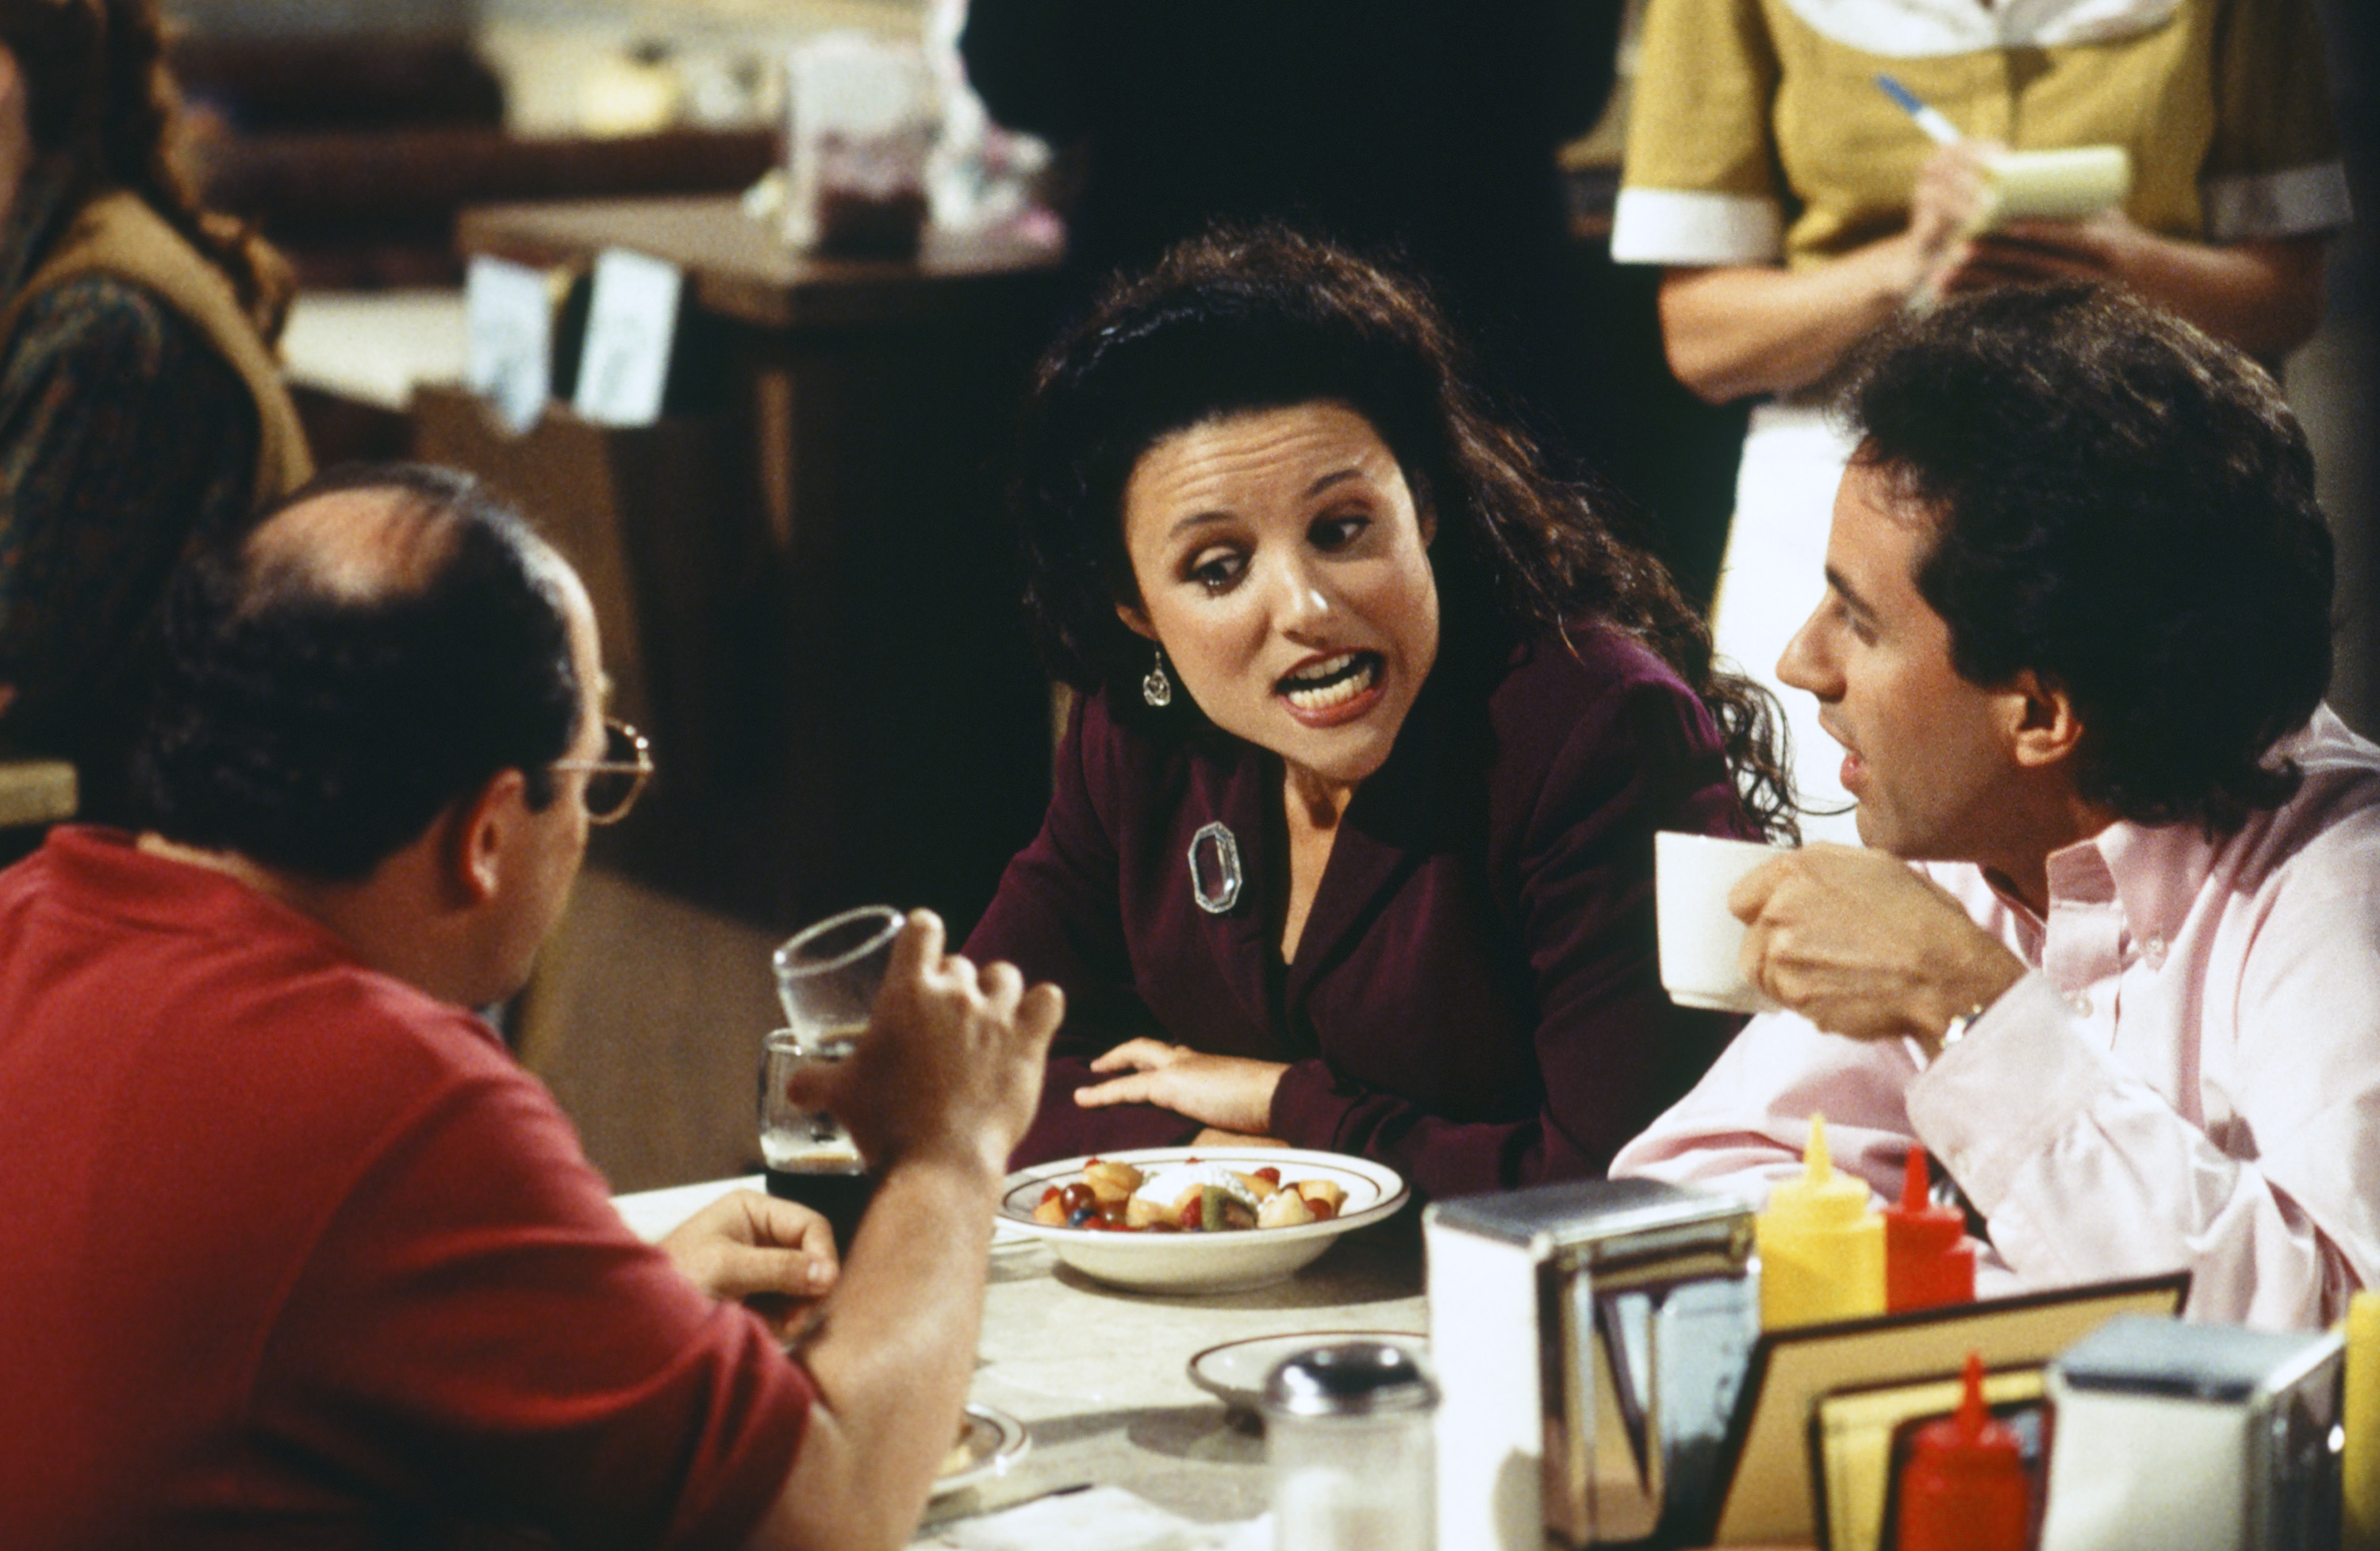 The 12 Best 'Seinfeld' Episodes, Ranked